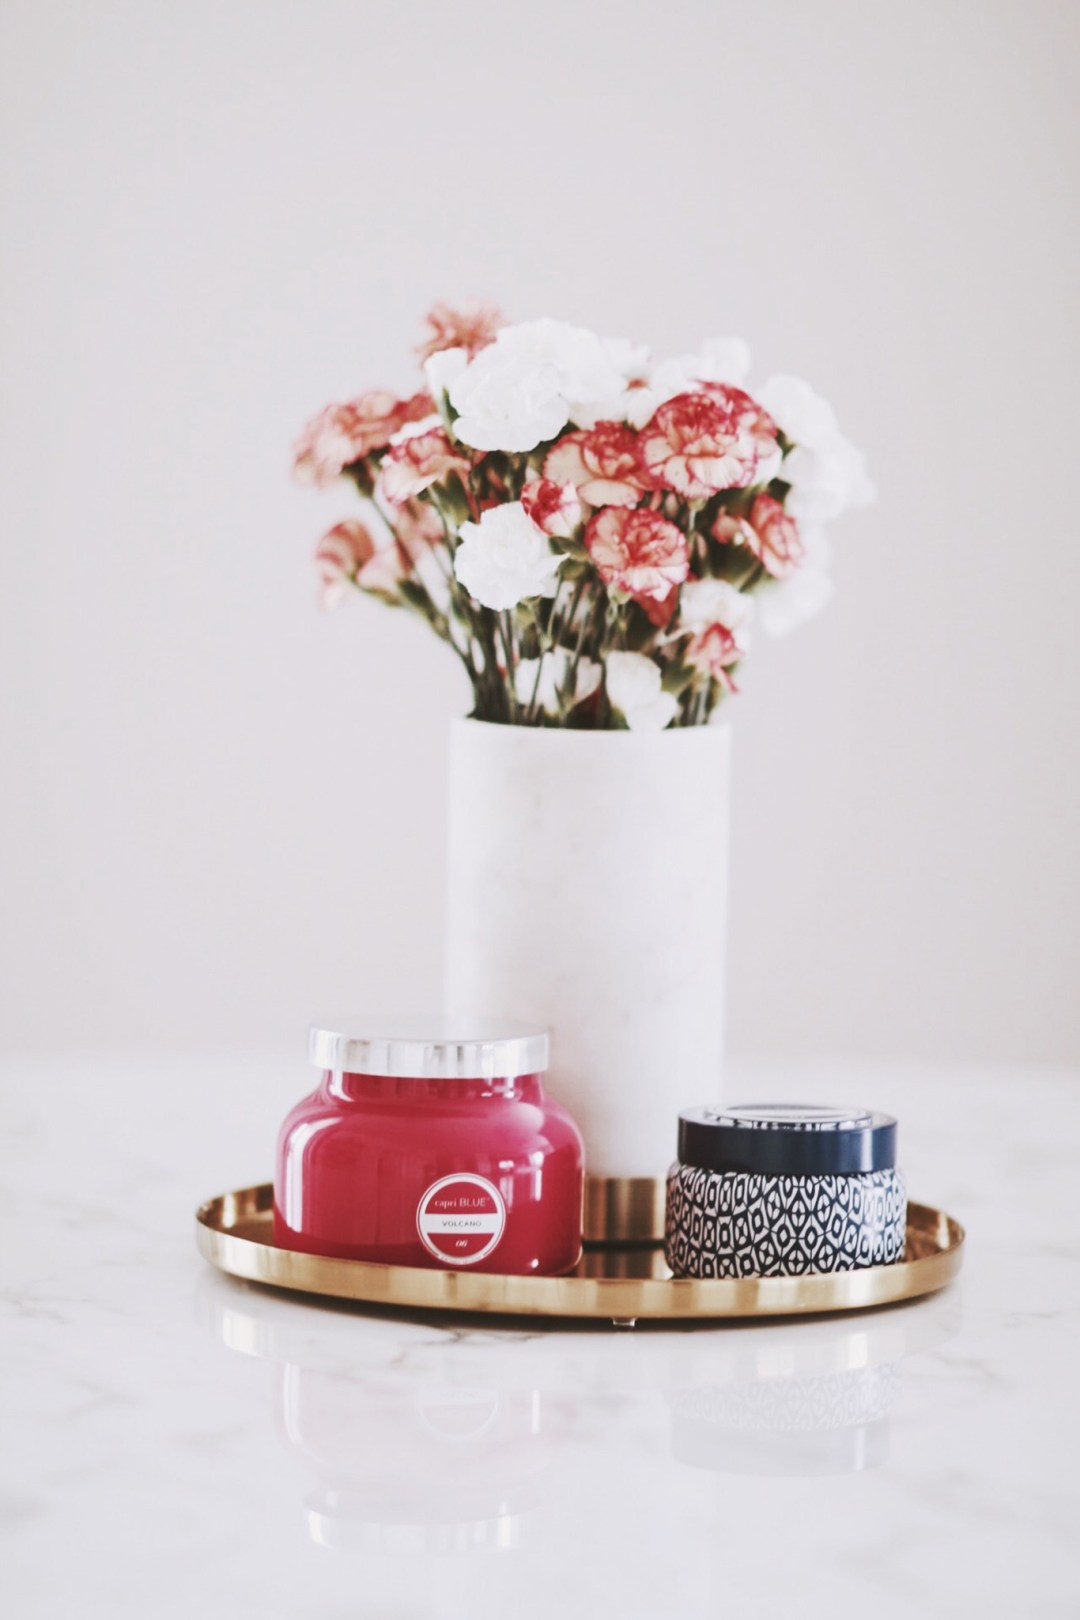 Alena Gidenko form modaprints.com shares tips on decorating your home with candles